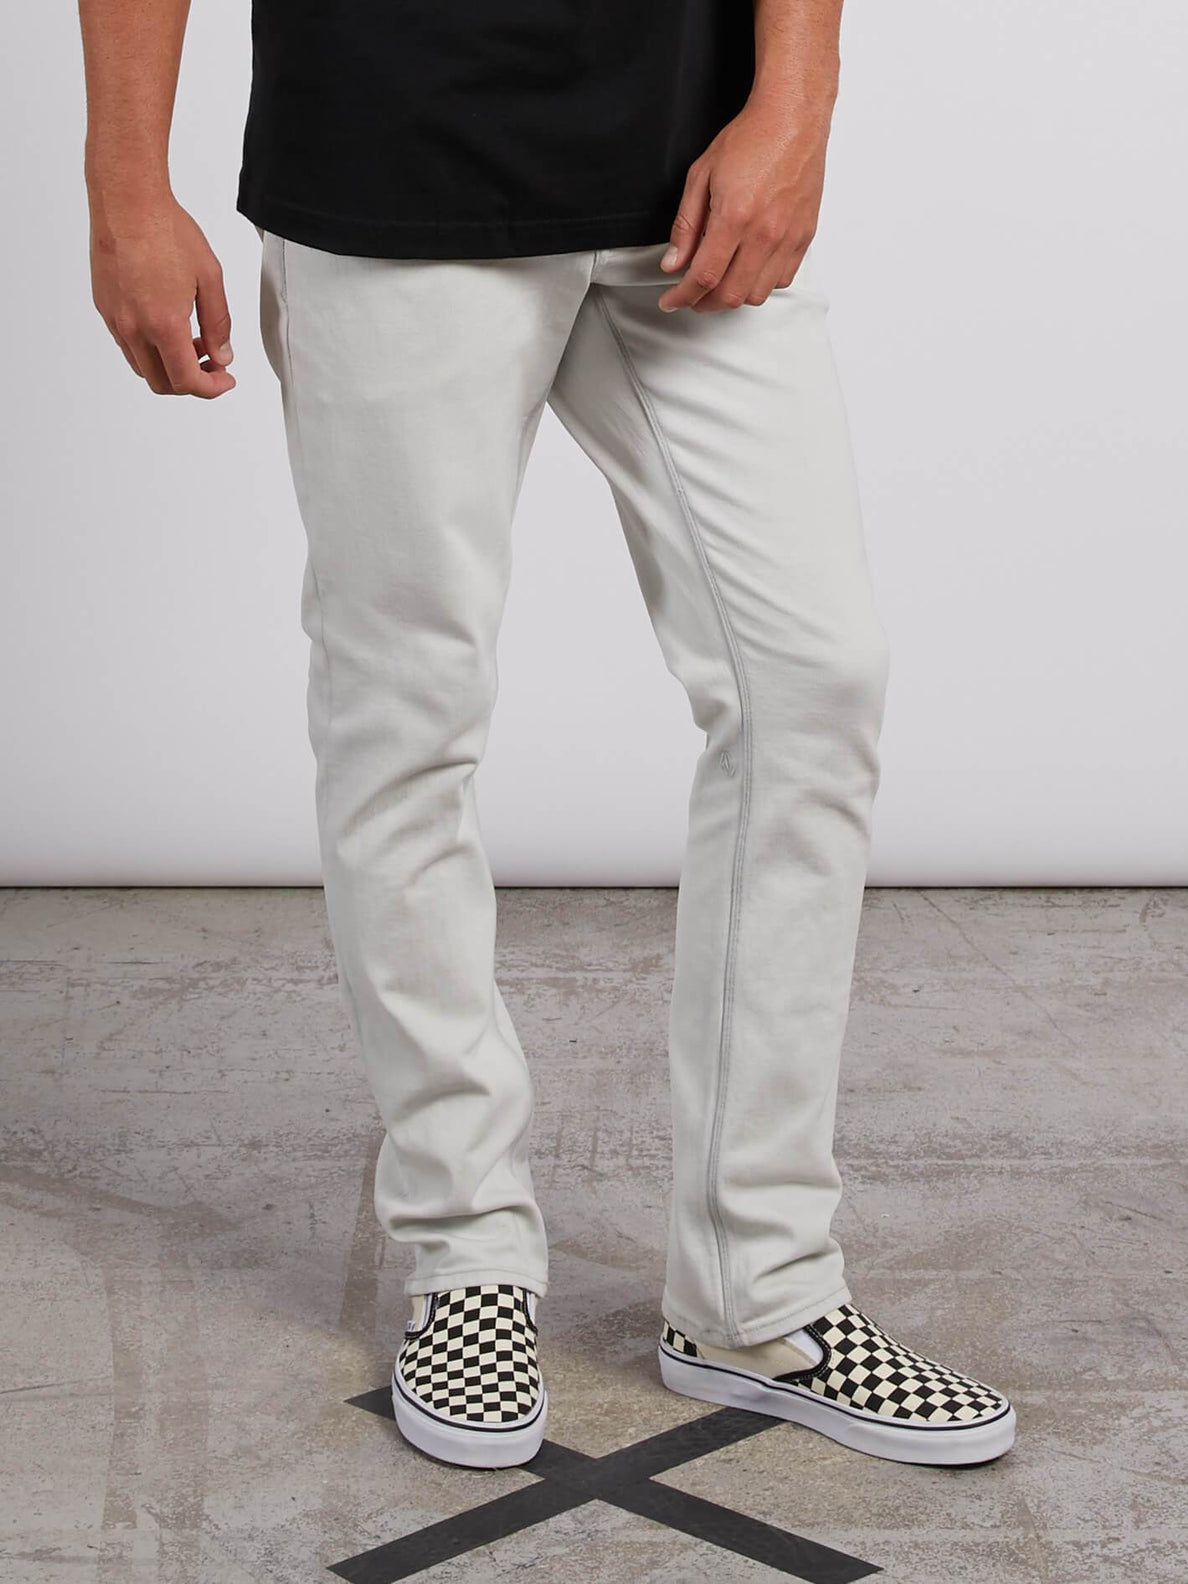 Jean Vorta Denim - Dirty White